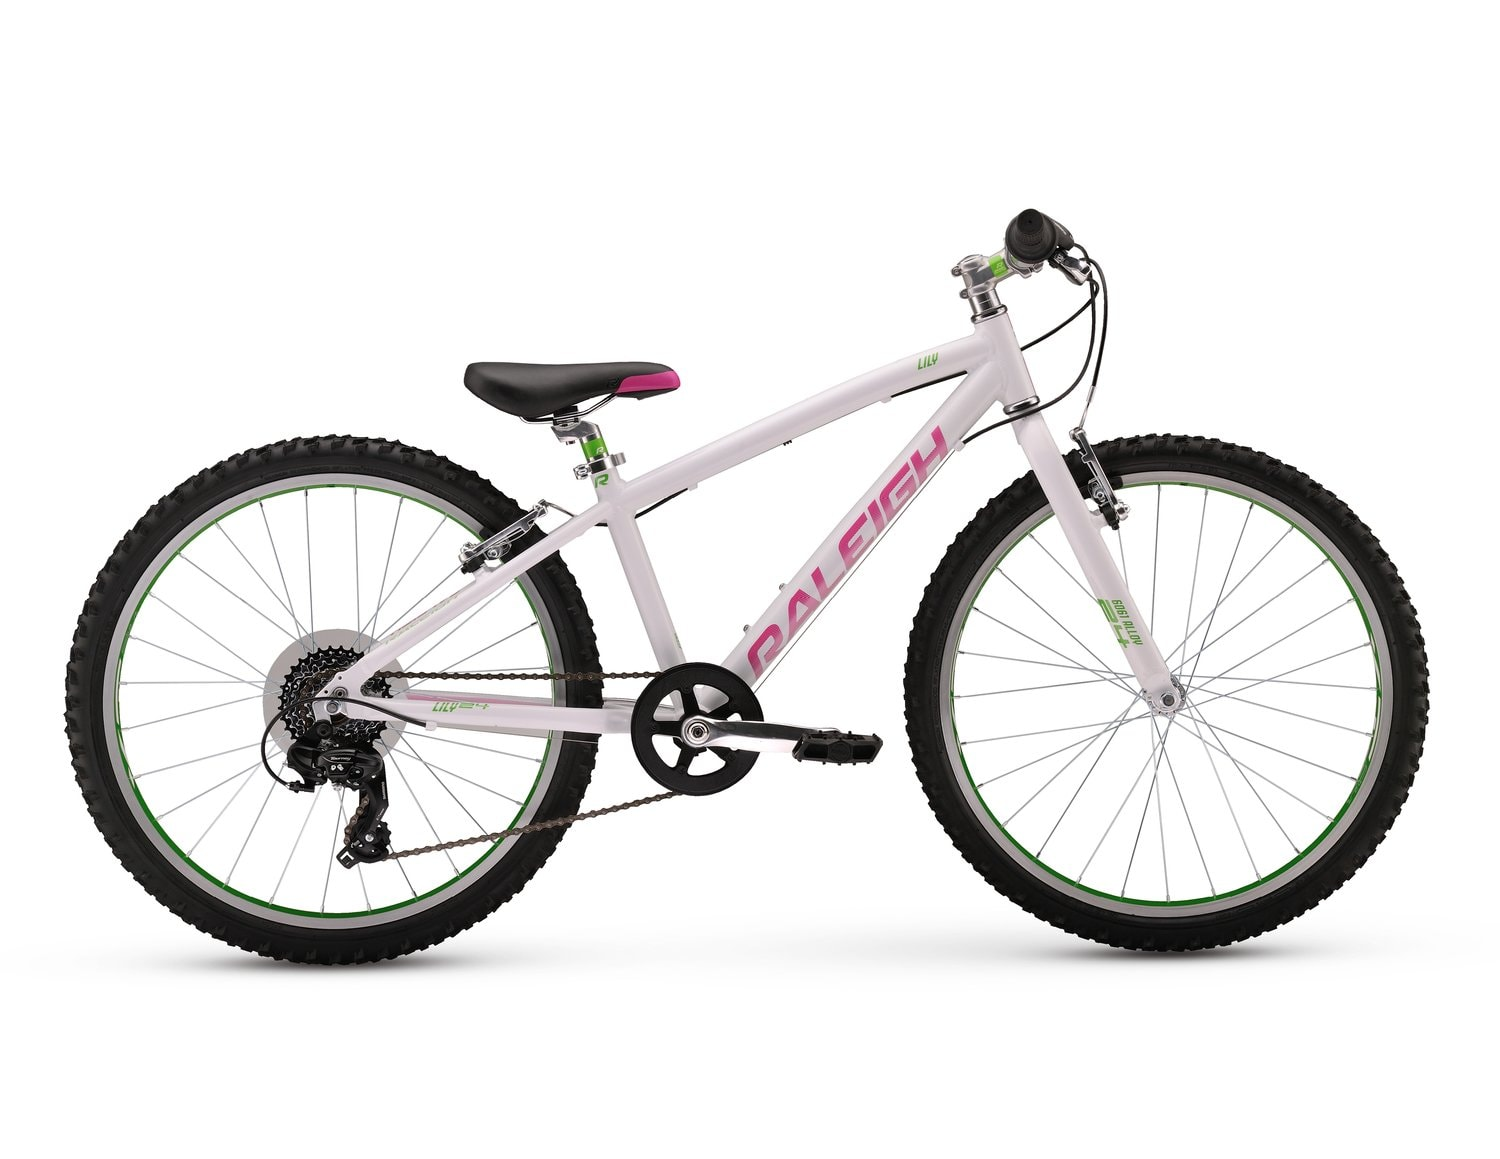 The 10 Best 24 Inch Bikes For Kids Aged 7 To 10